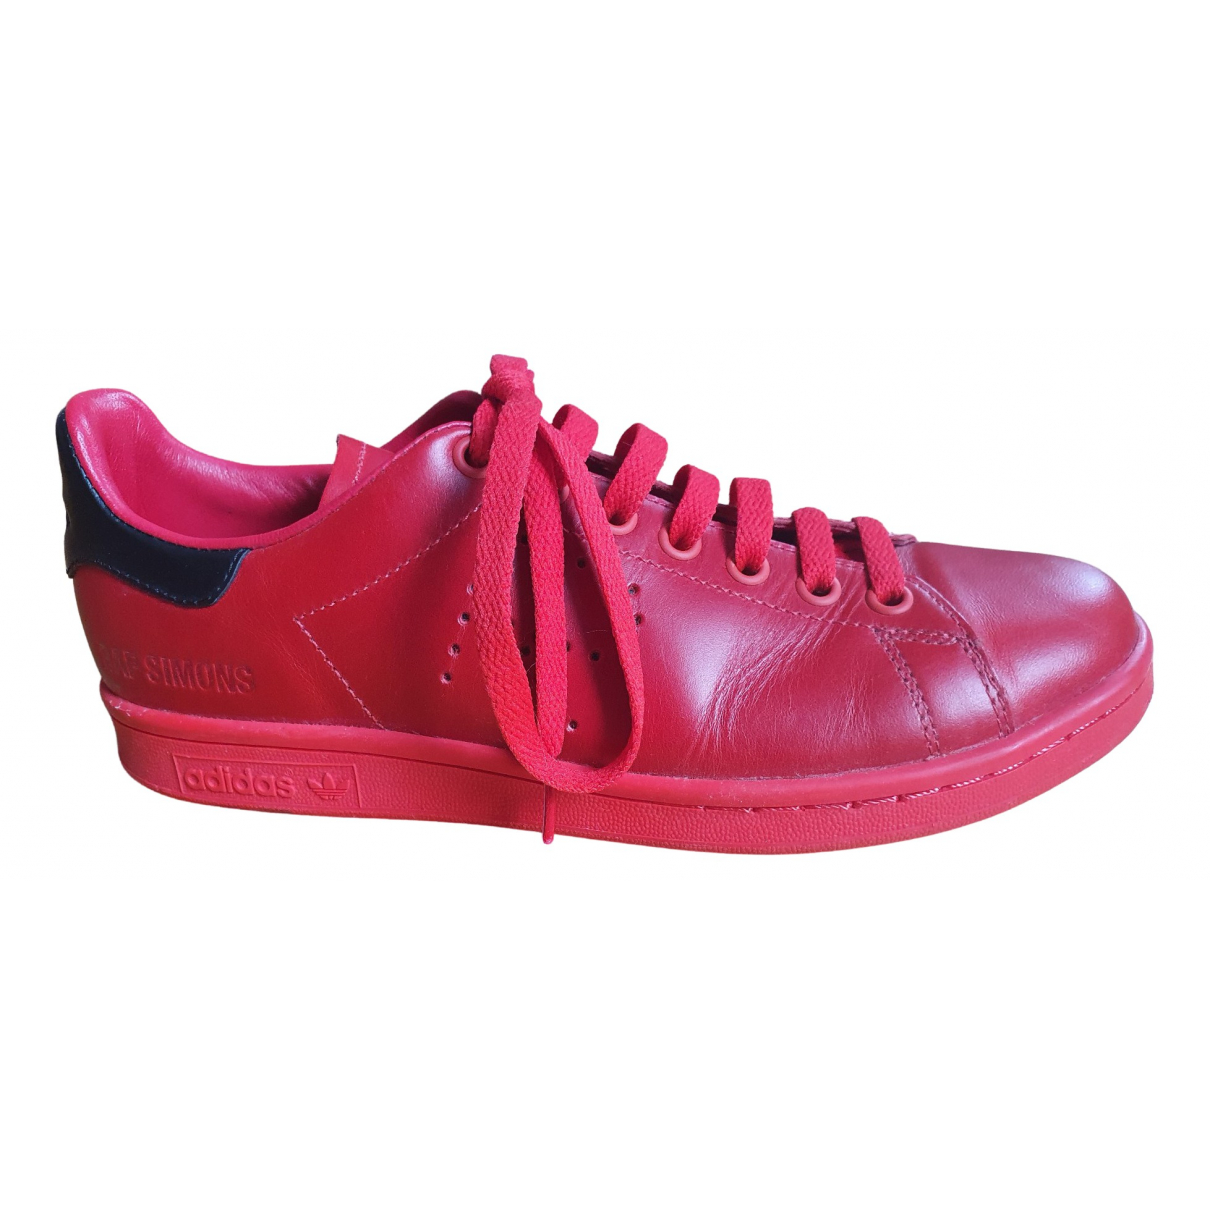 Adidas X Raf Simons Stan Smith Red Leather Trainers for Women 39 EU